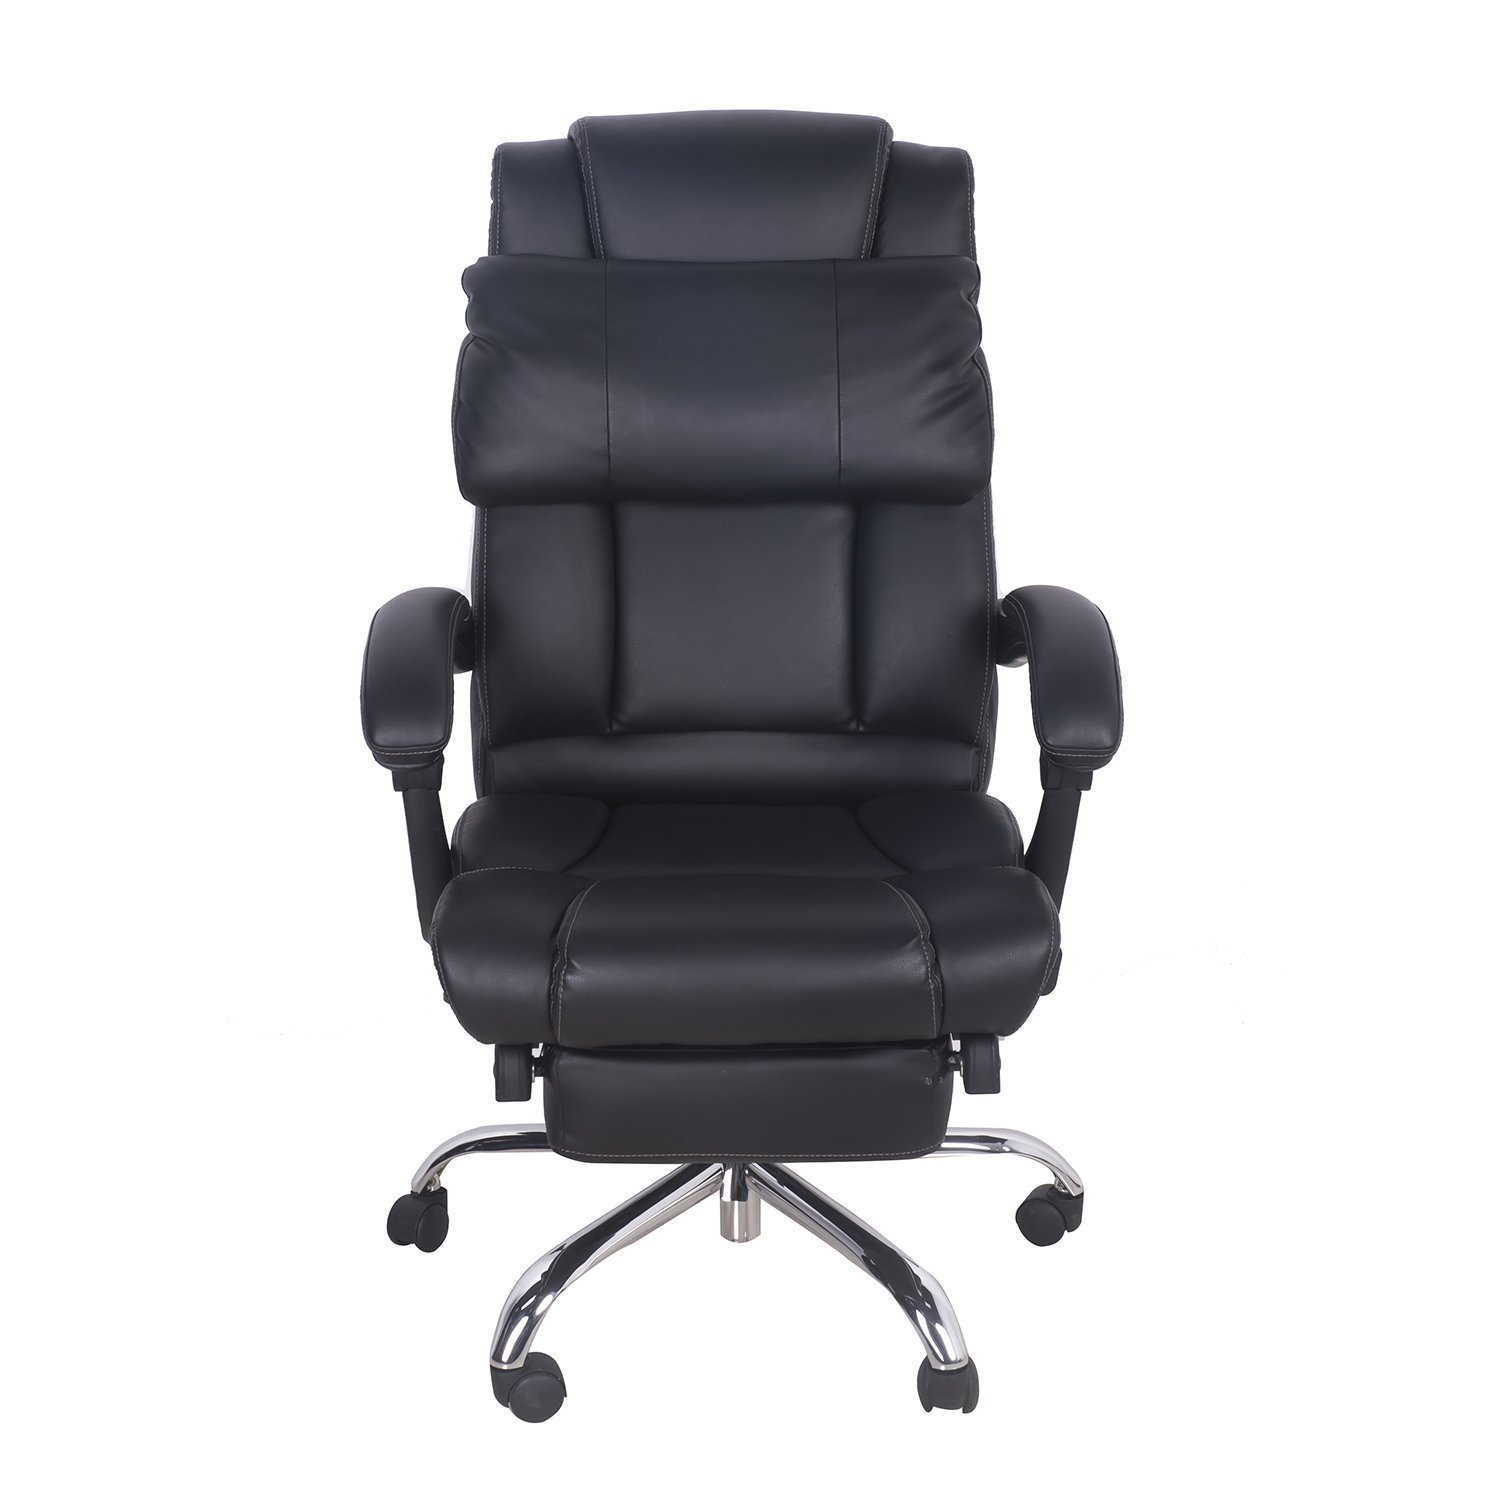 Executive Chairs Top 10 Reclining Office Chairs Reviewed Updated Guide